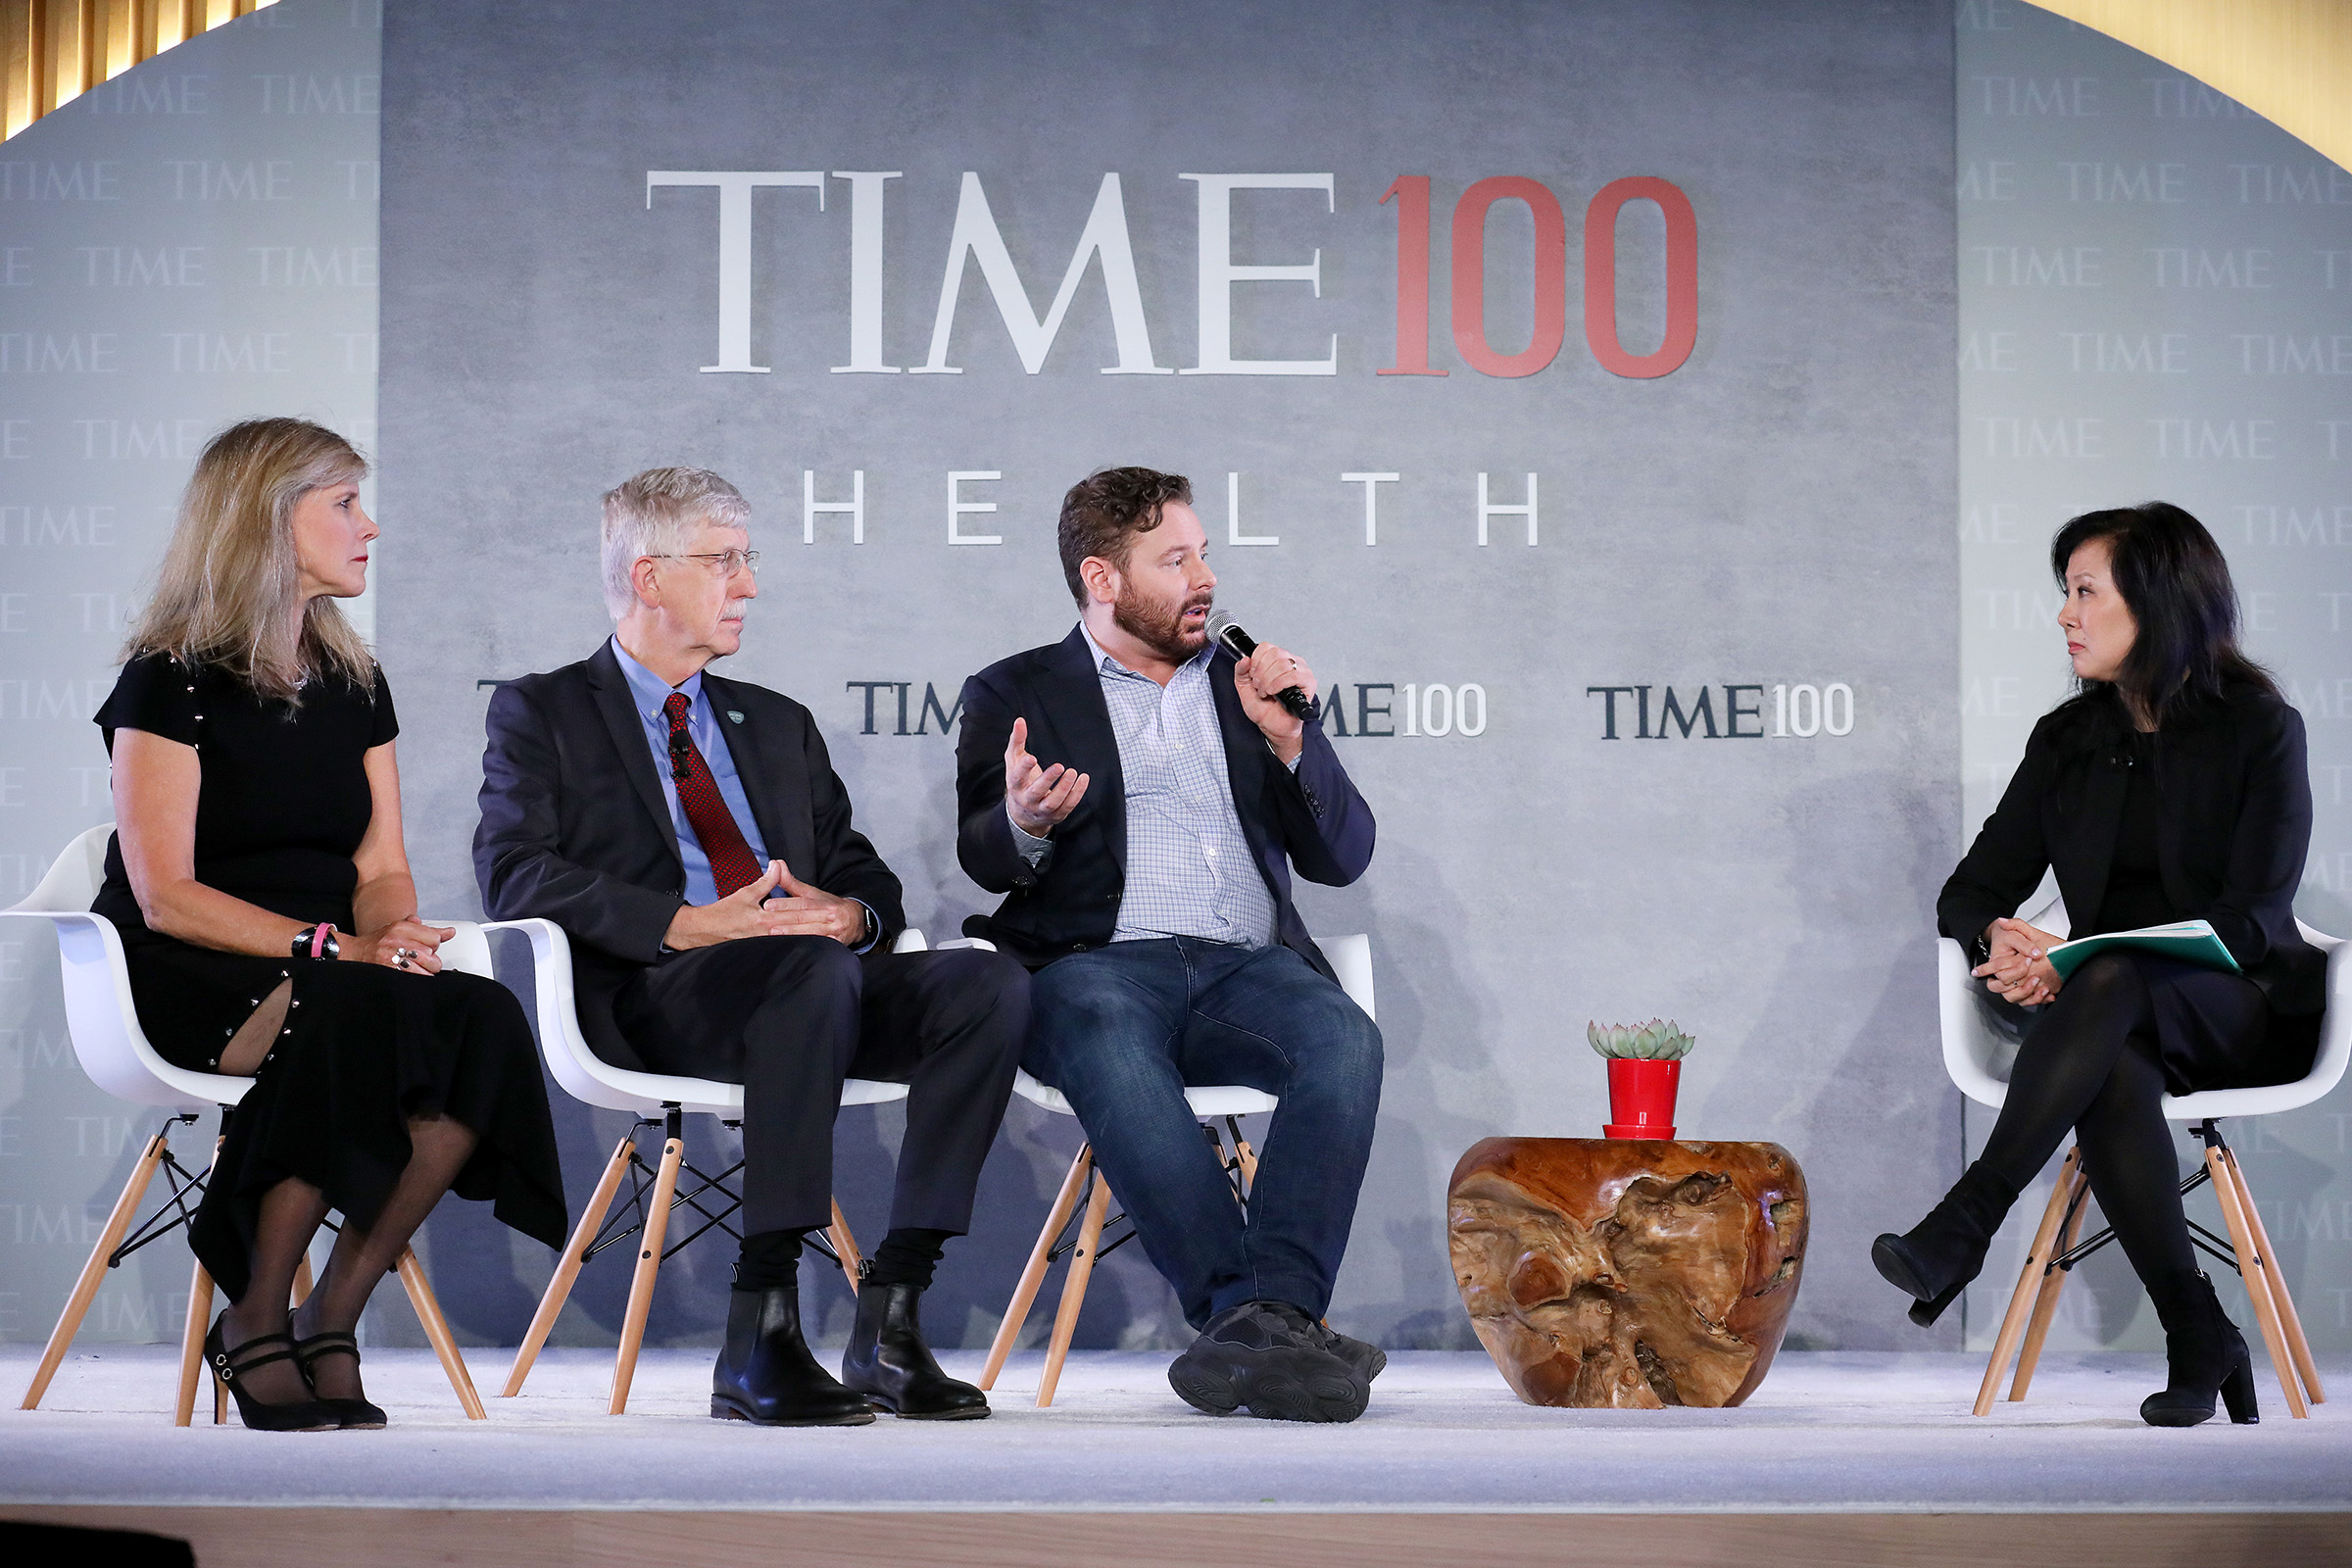 (L-R) Professor of Surgery at UCSF School of Medicine, Dr. Laura Esserman, Director at National Institutes of Health, Dr. Francis Collins, Entrepreneur & Philanthropist Sean Parker,  and Senior Health Writer for TIME and TIME 100 Health Summit Co-Chair, Alice Park, speak onstage during the TIME 100 Health Summit at Pier 17 in New York City on Oct. 17, 2019.